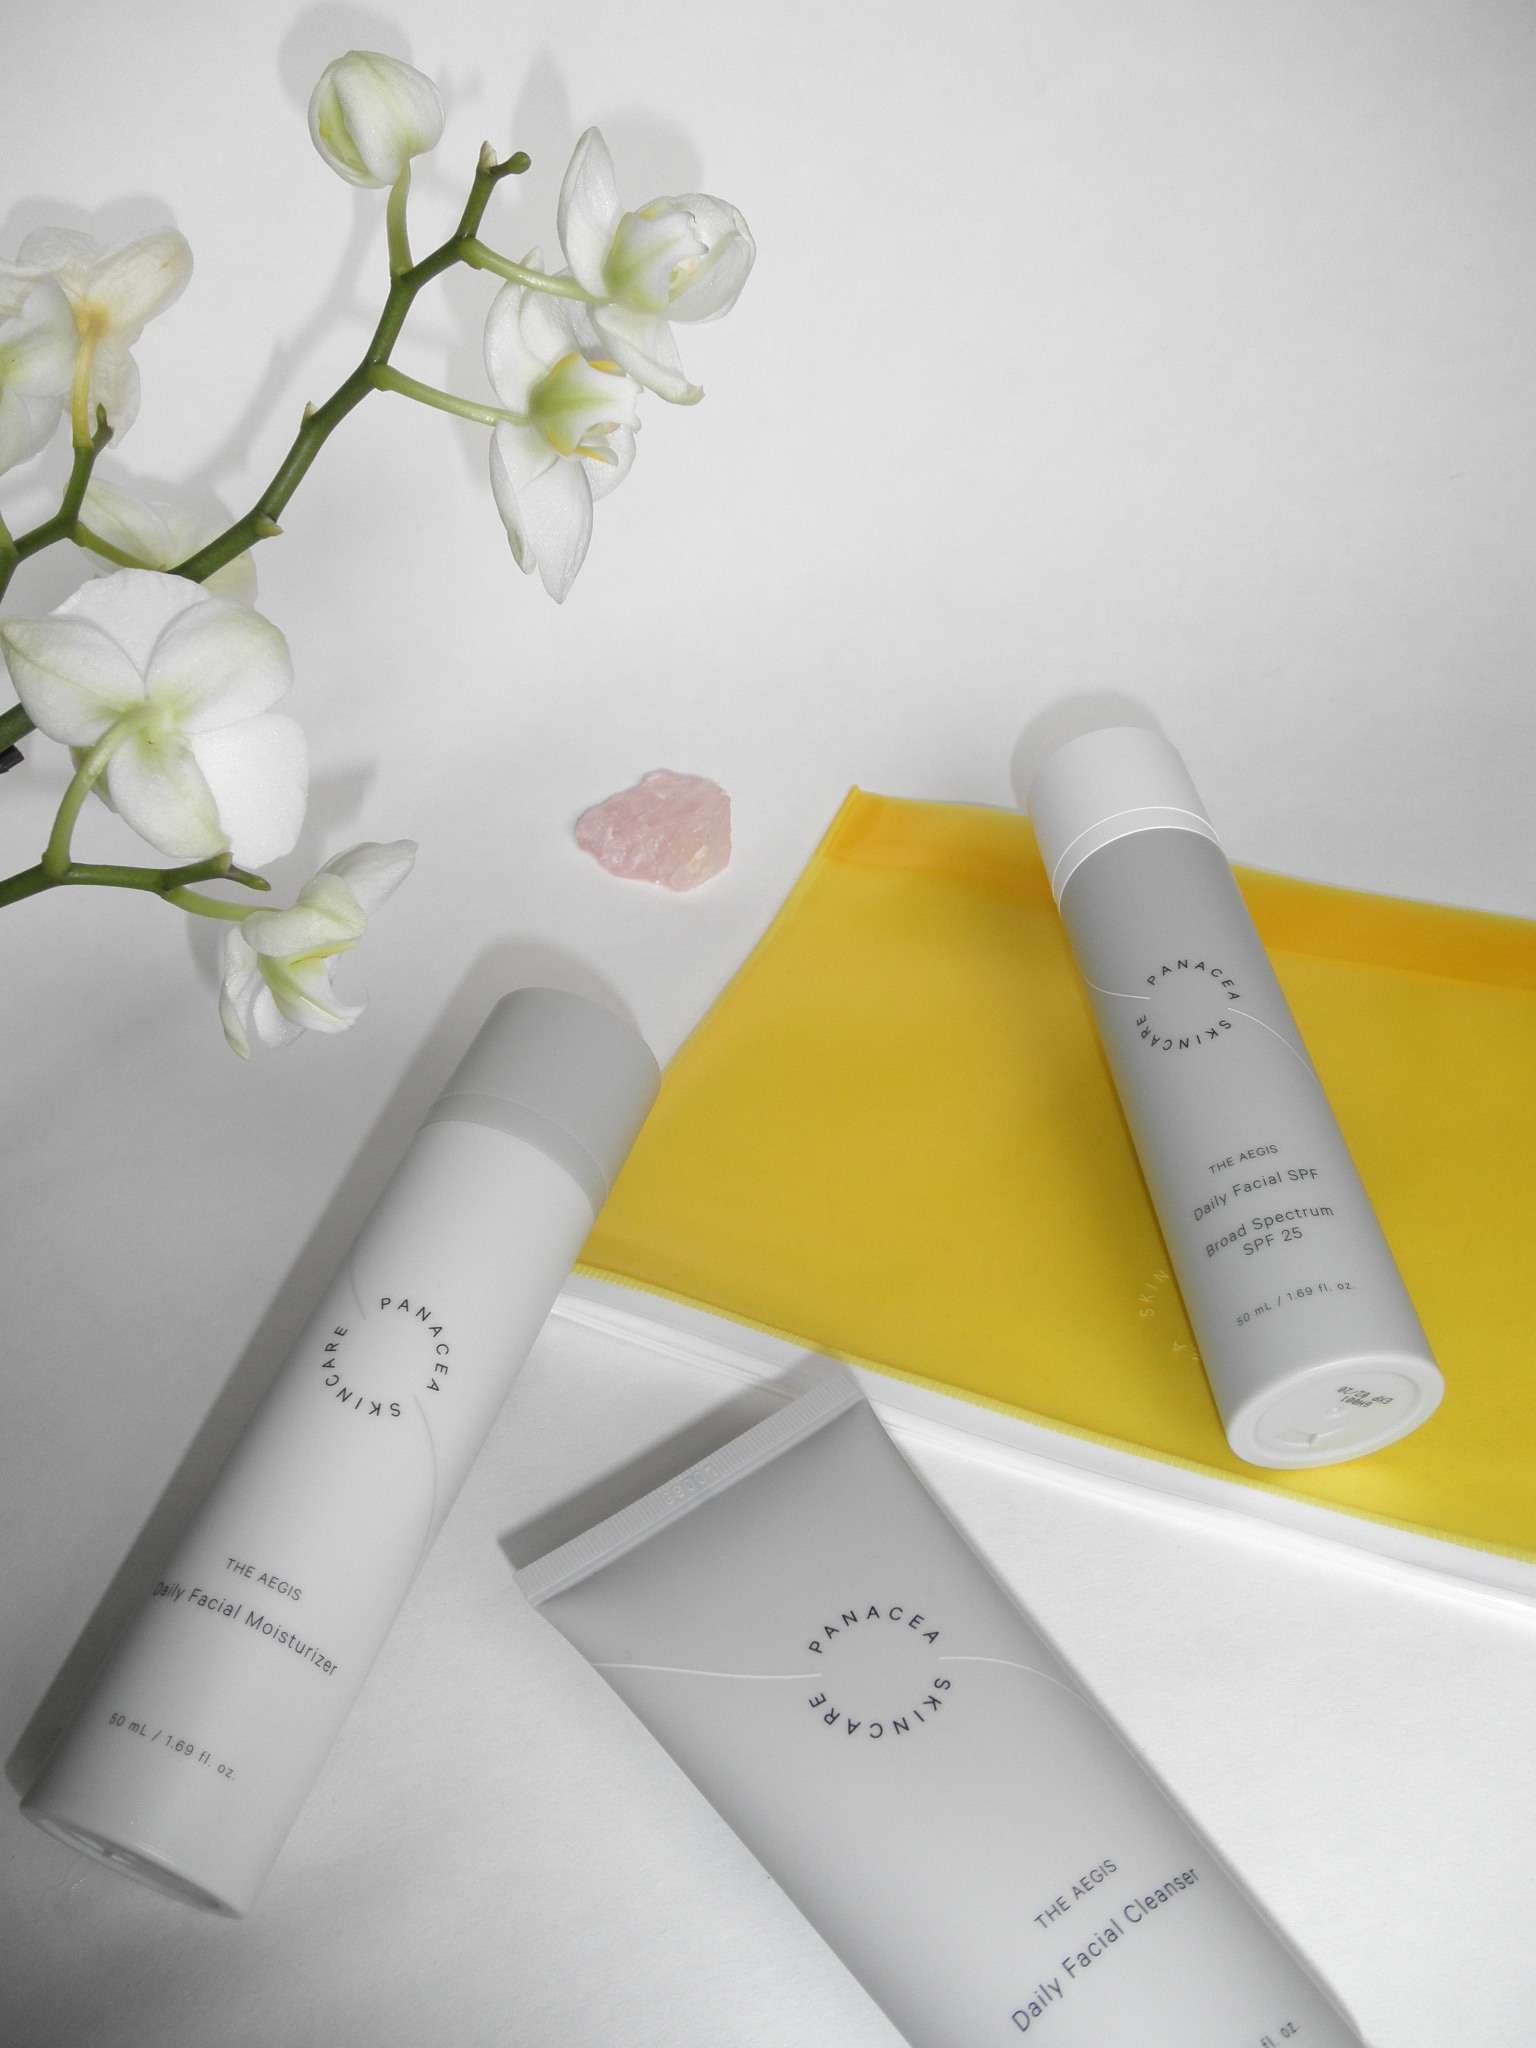 Korean Skincare in just 3 steps, here's our review of Panacea Skincare // DNAMAG